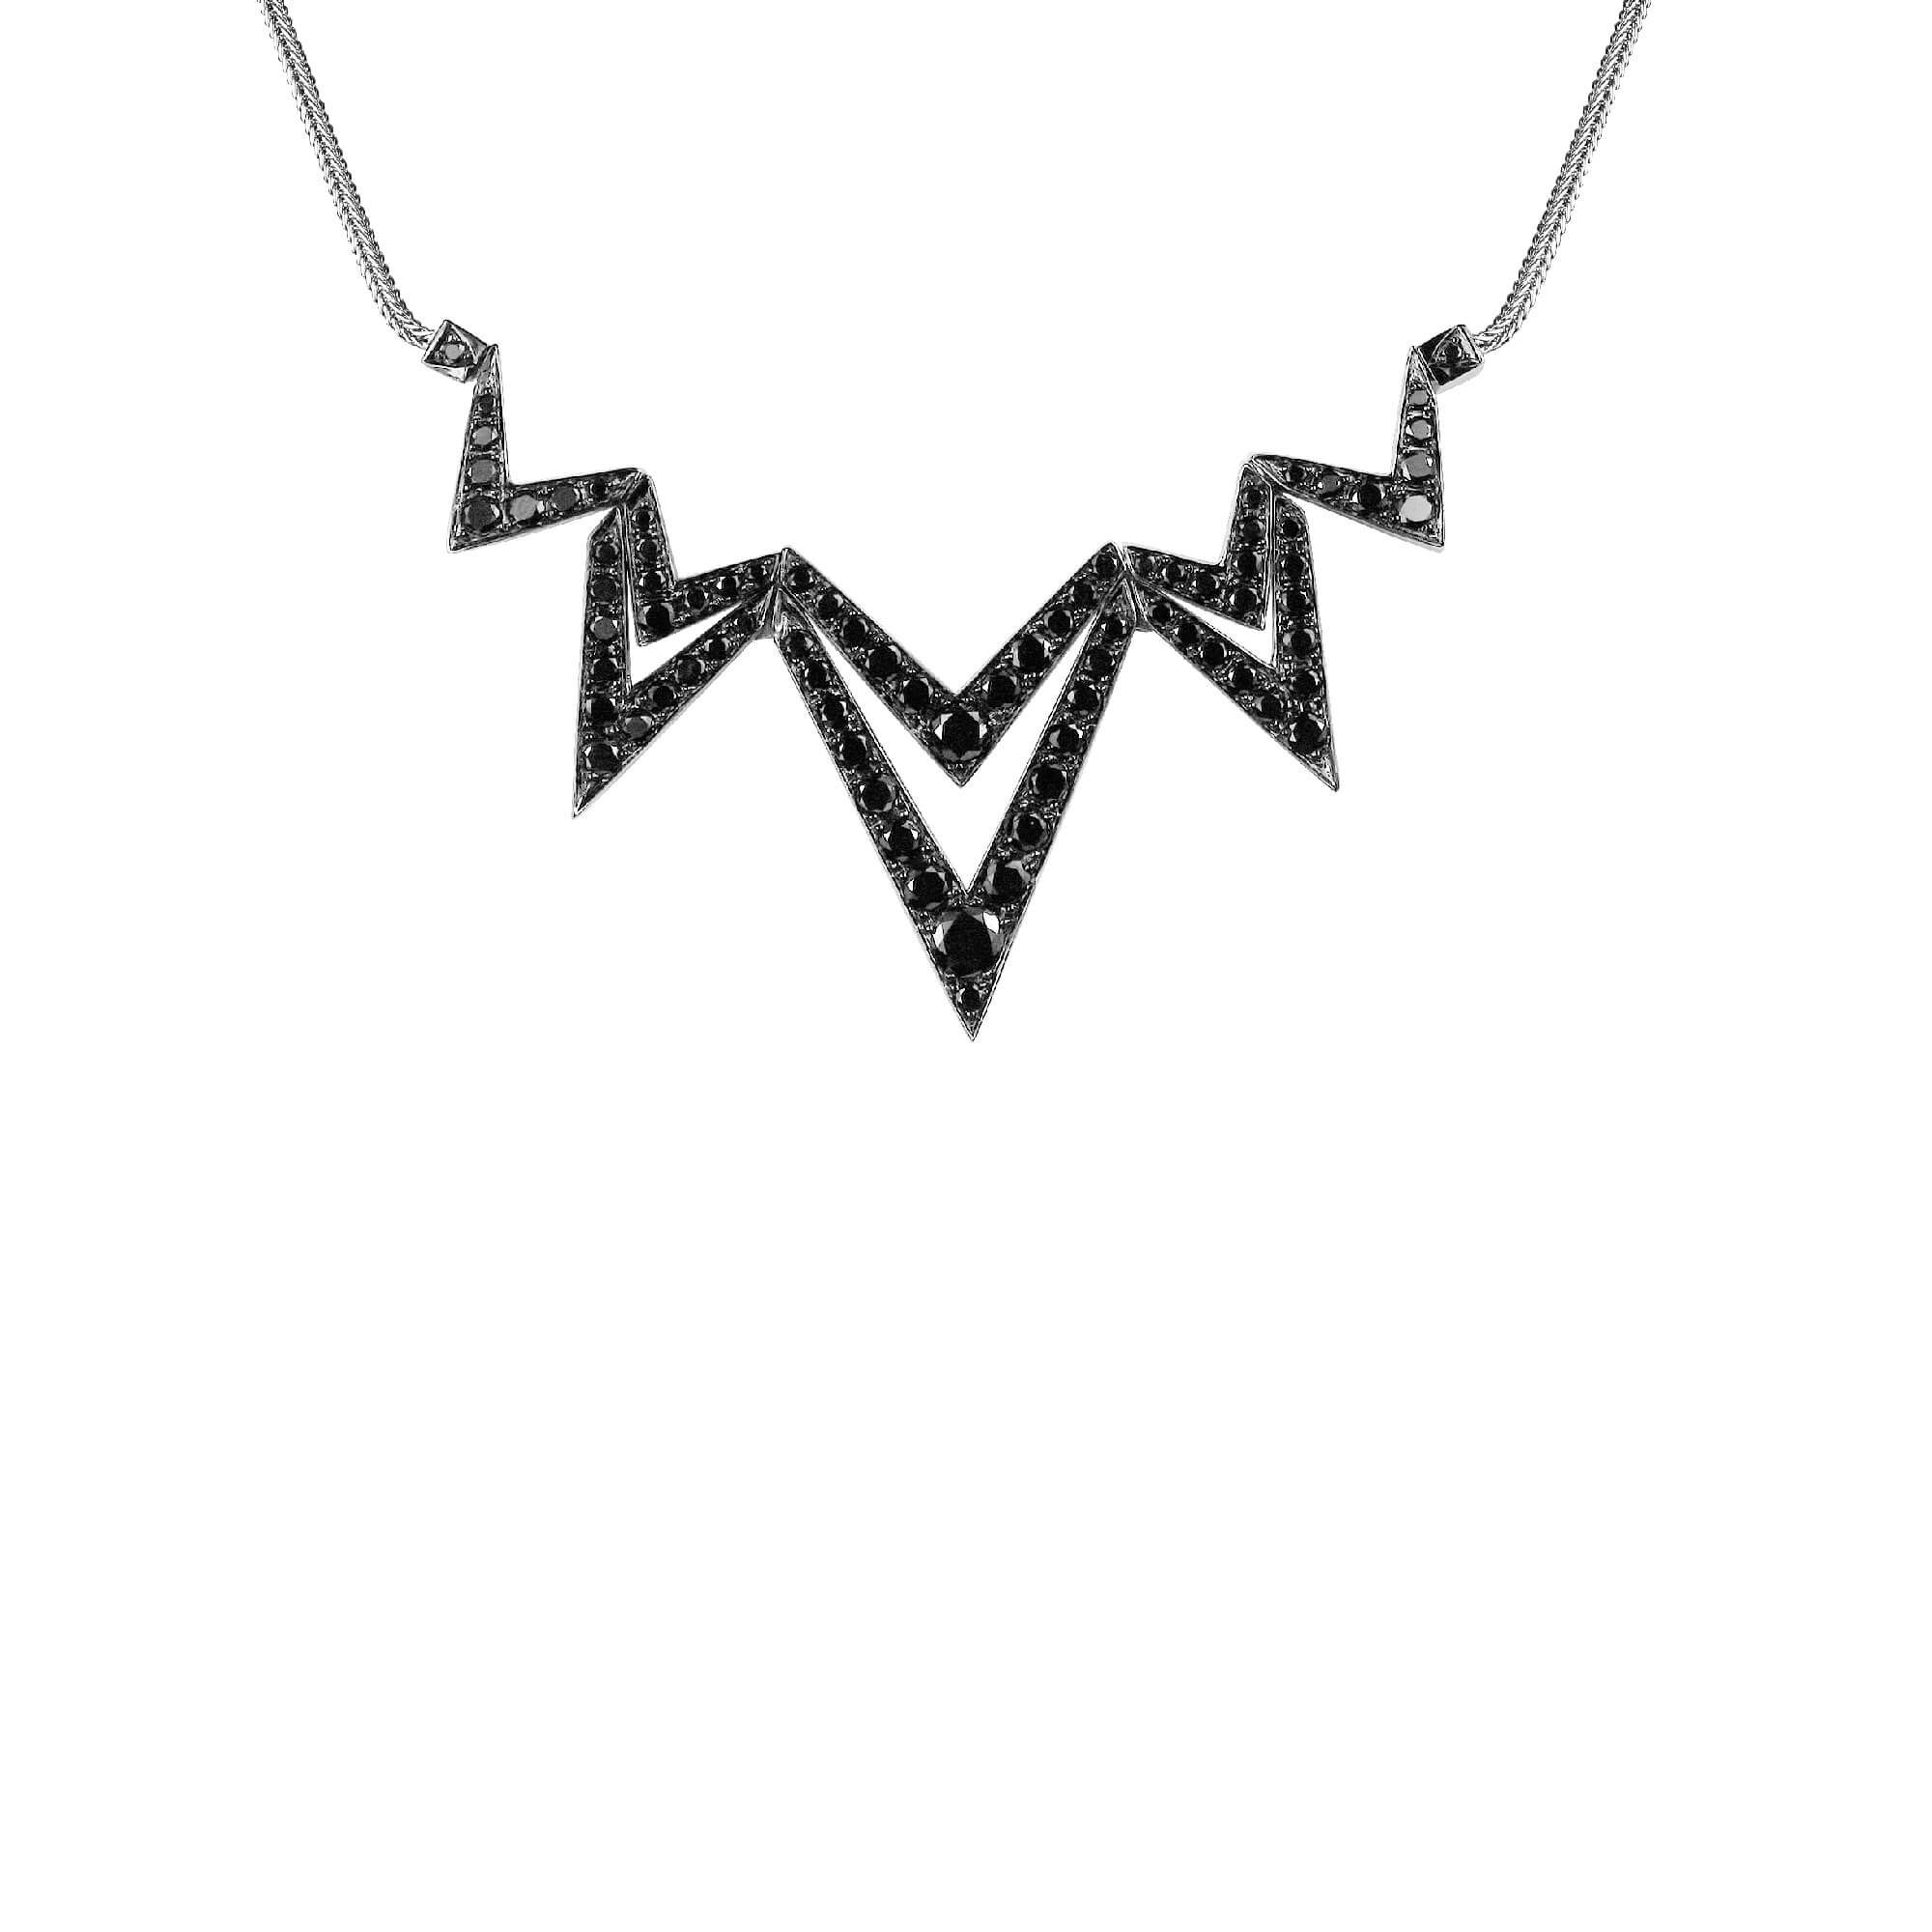 18k White Gold & Black Diamond Pavé Necklace | Lady Stardust